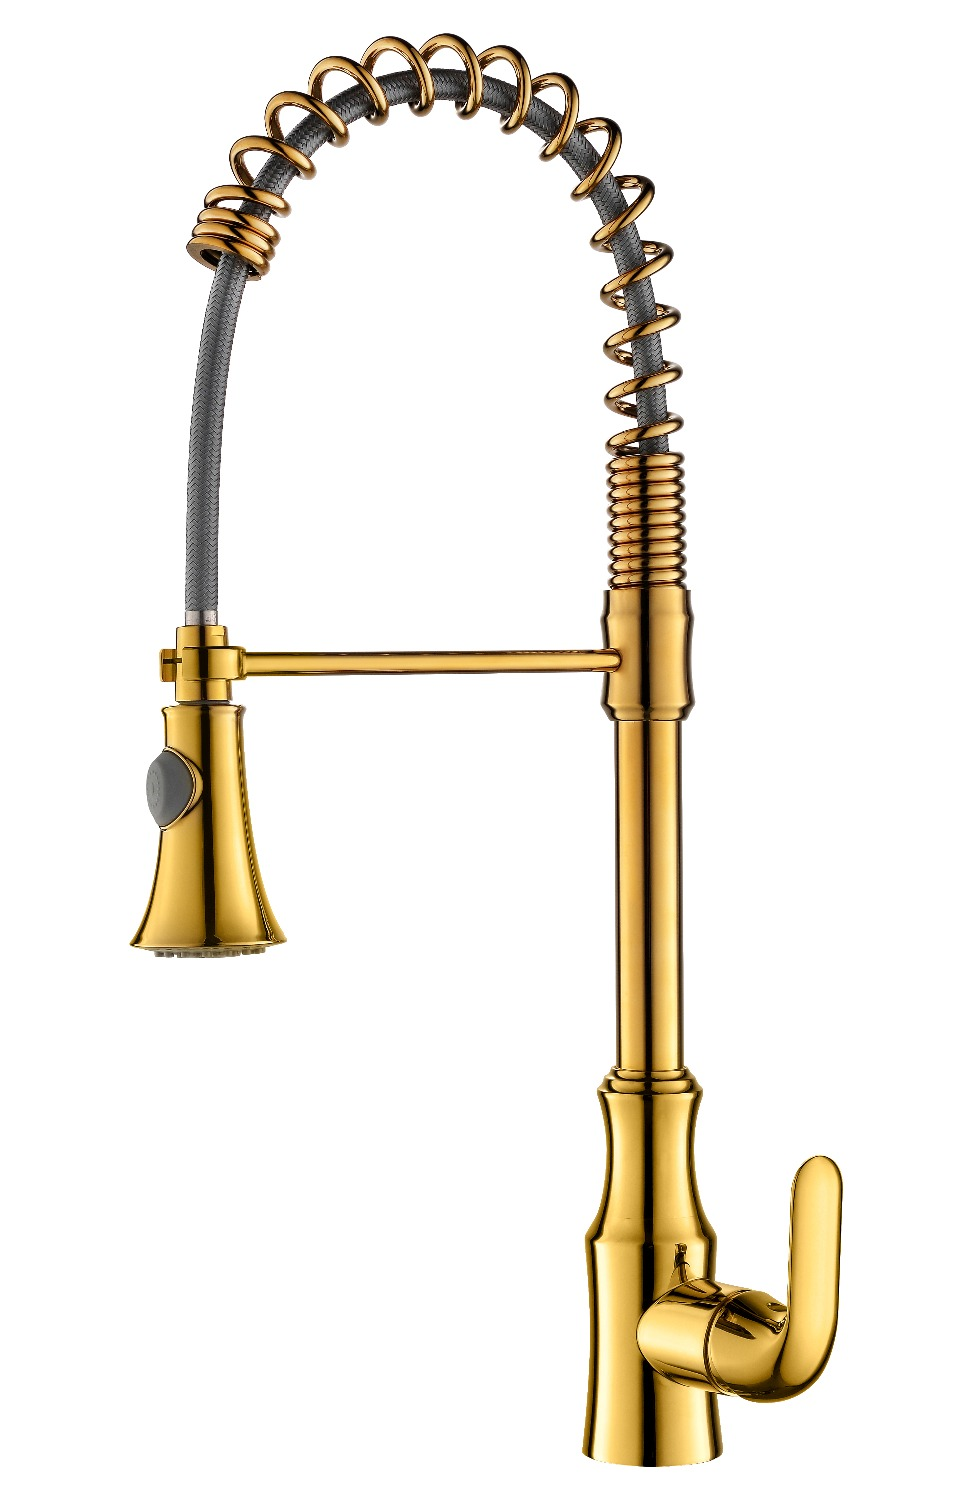 Free Ship Gold Kitchen faucet Single hole deck mounted hot and cold sink tap Water Tap with pull out shower head Kitchen Mixer